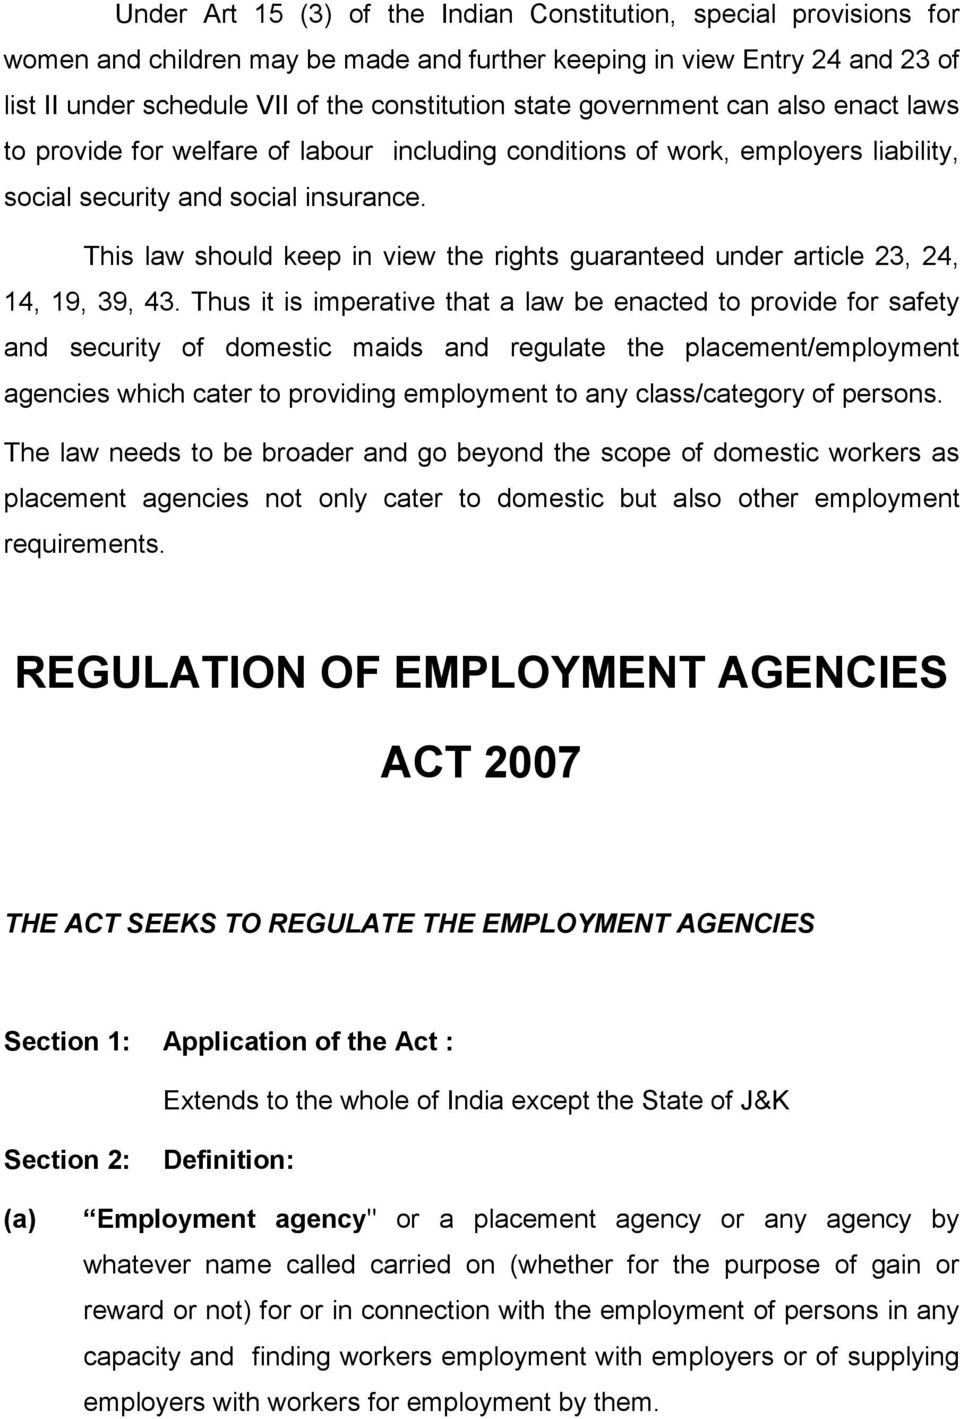 This law should keep in view the rights guaranteed under article 23, 24, 14, 19, 39, 43.